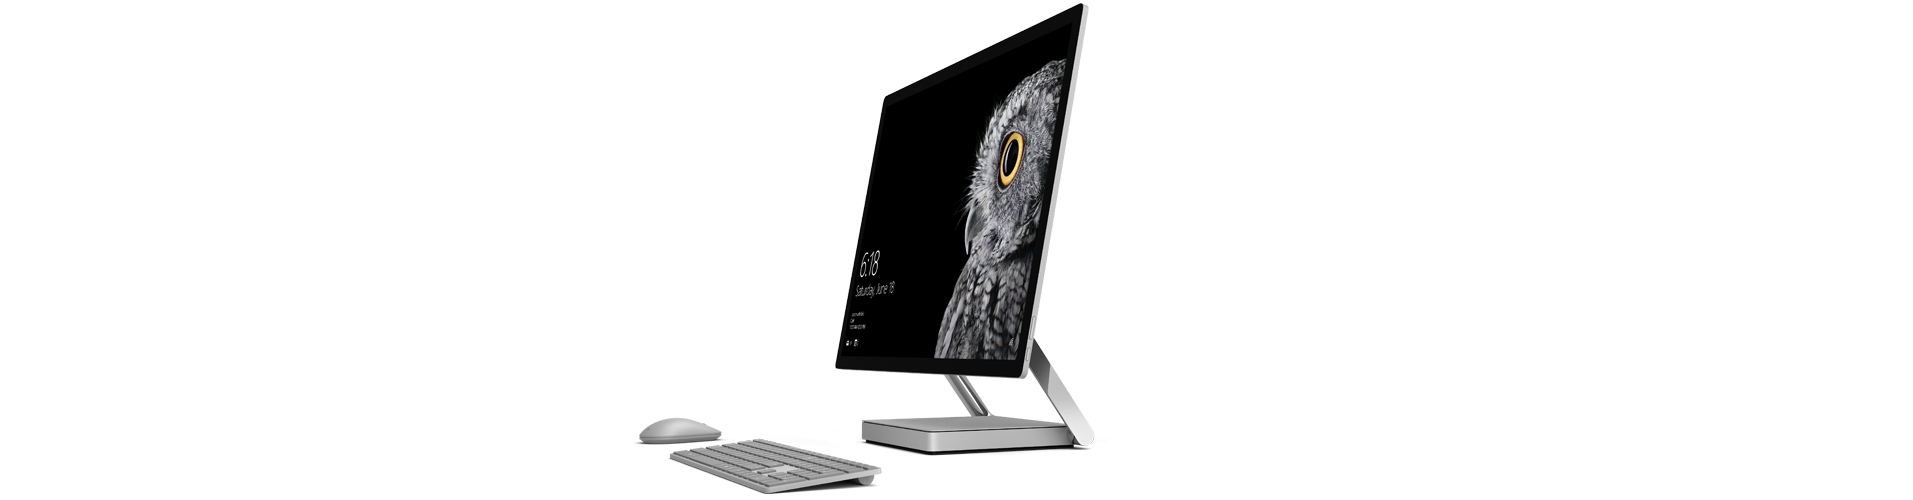 Surface Studio 處於直立模式,還有 Surface 滑鼠和鍵盤。